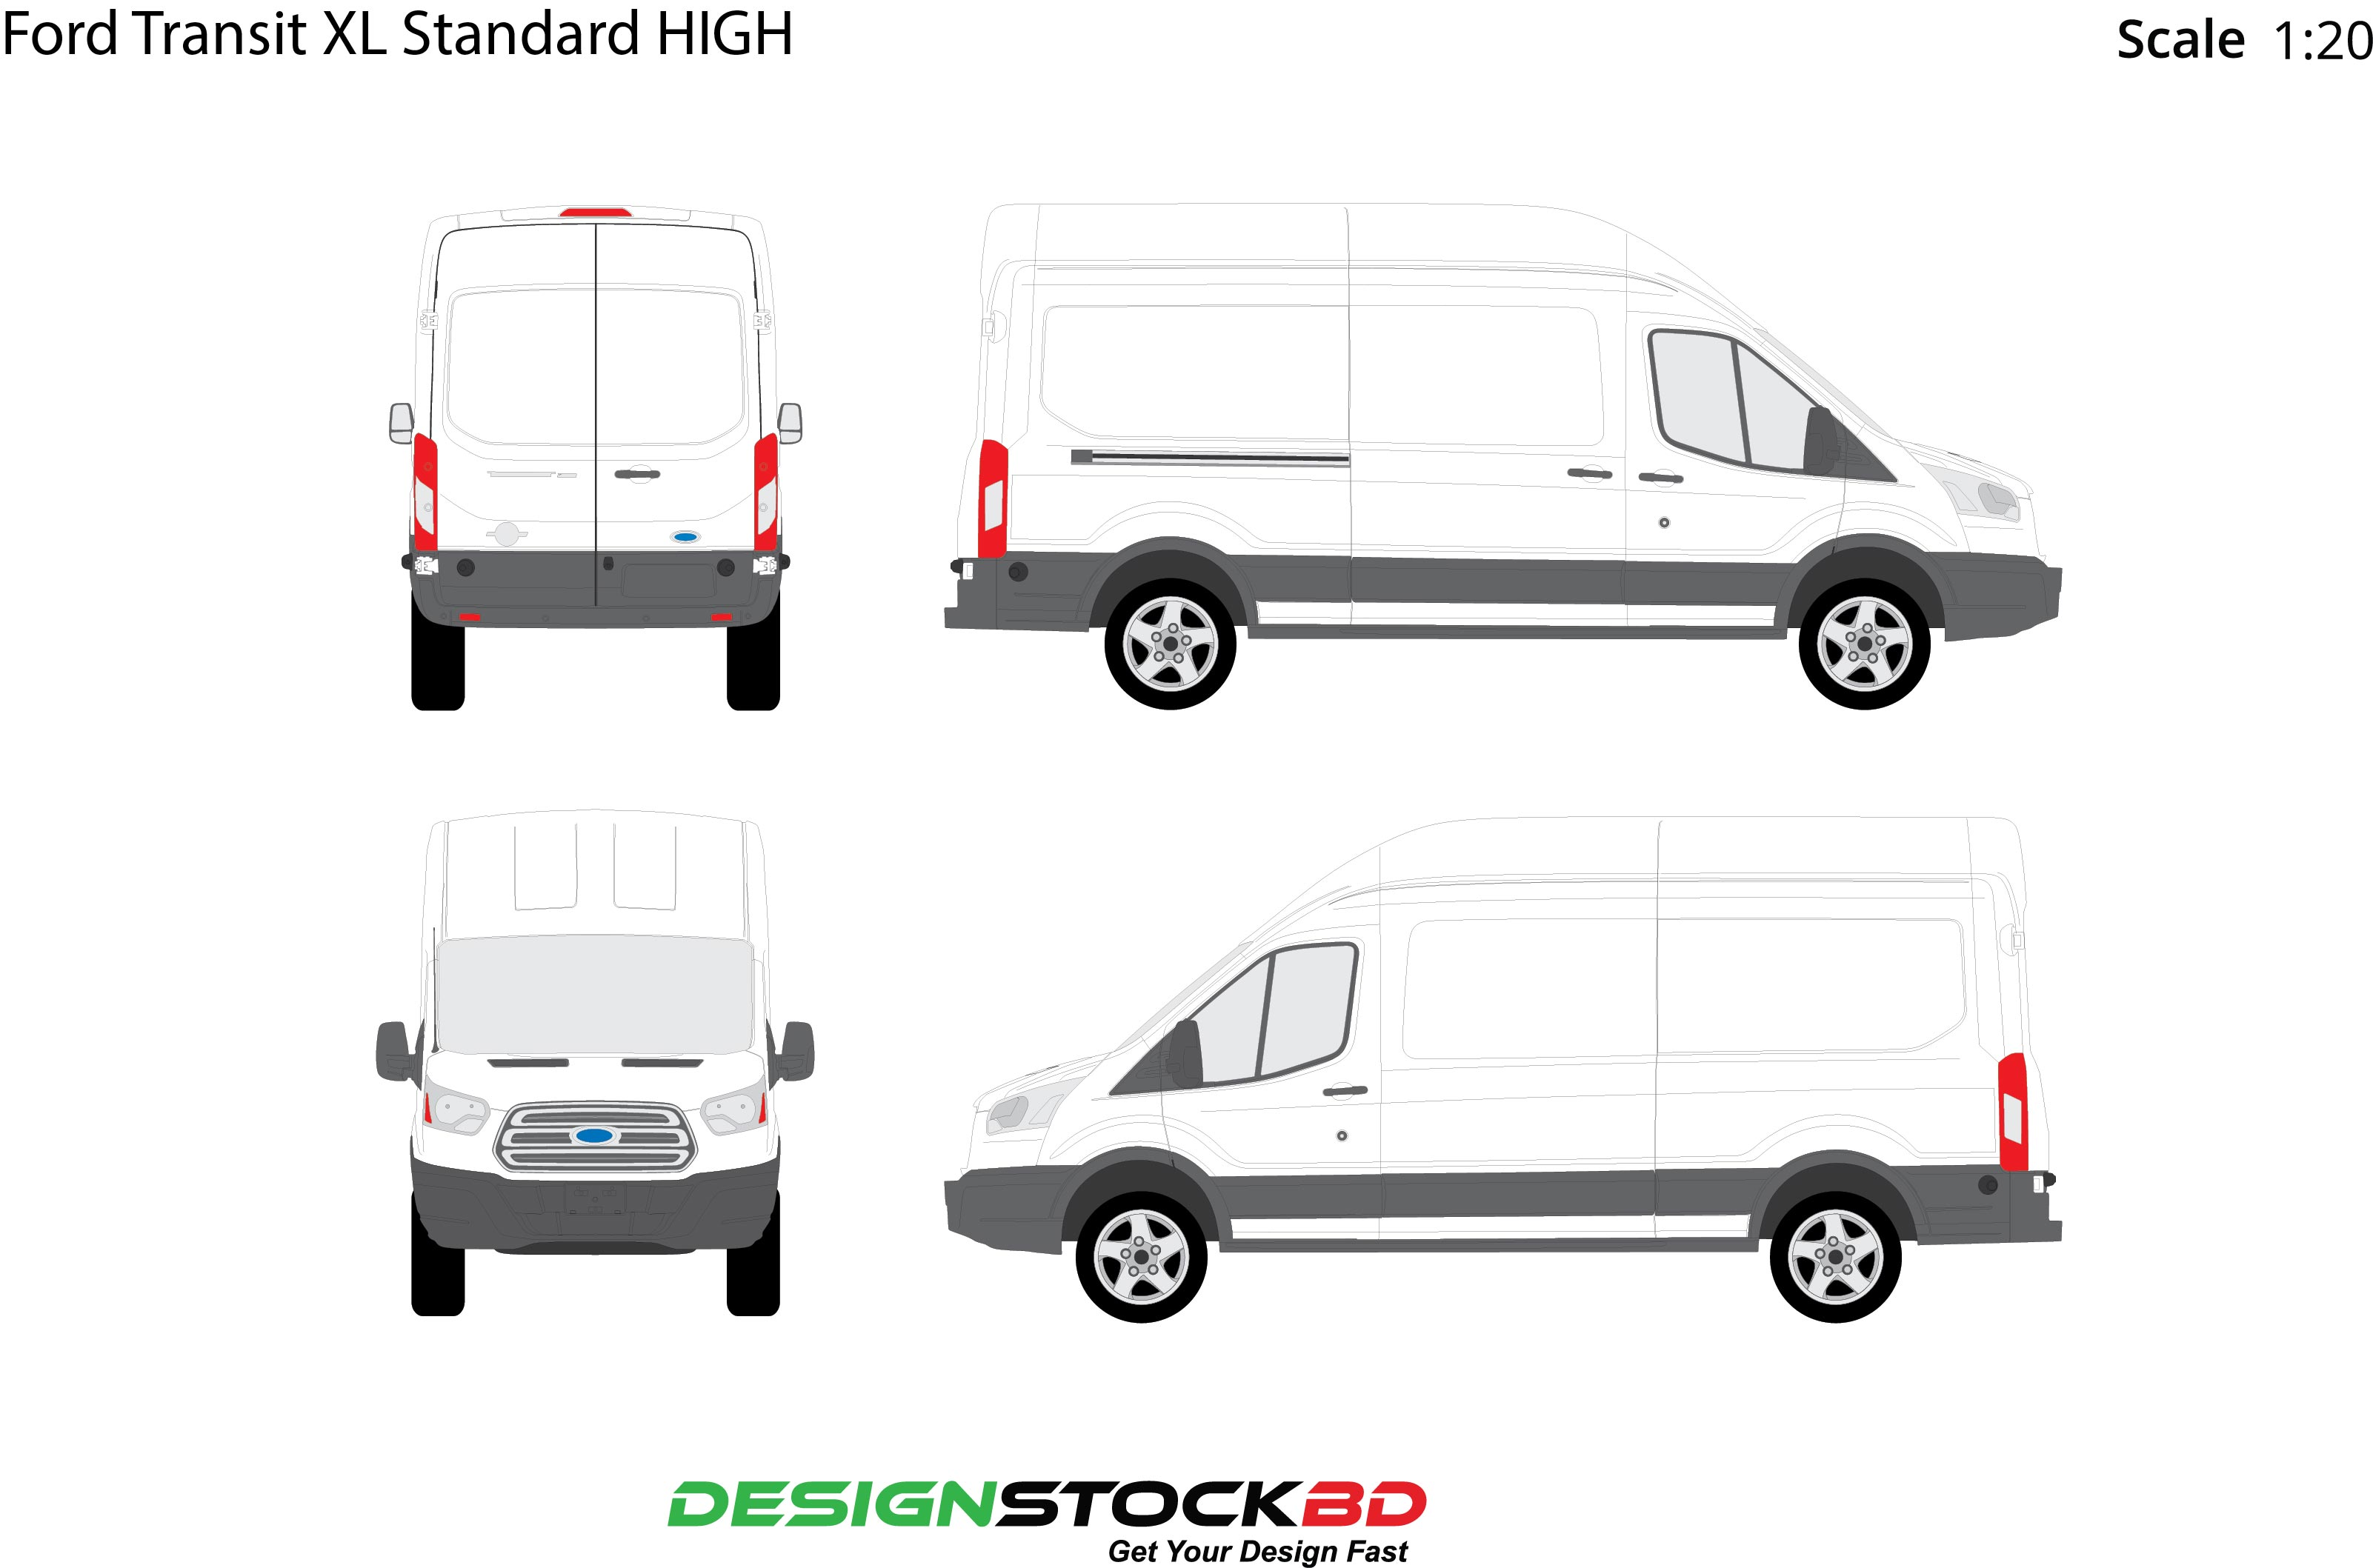 photo relating to Printable in Transit Sign for Car referred to as Ford Transit XL Traditional Significant Car Blueprint/Determine/Template Obtain